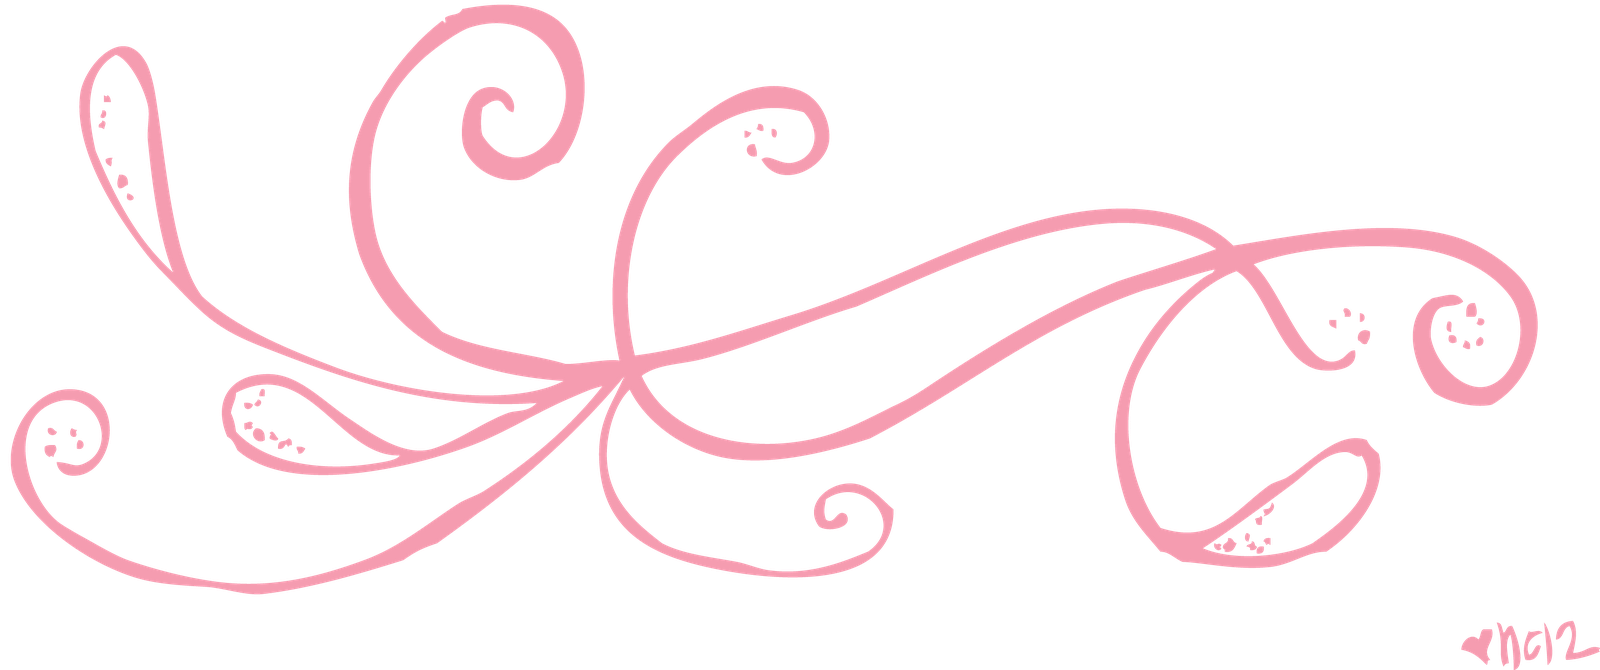 Free Pink Swirl Png, Download Free Clip Art, Free Clip Art.